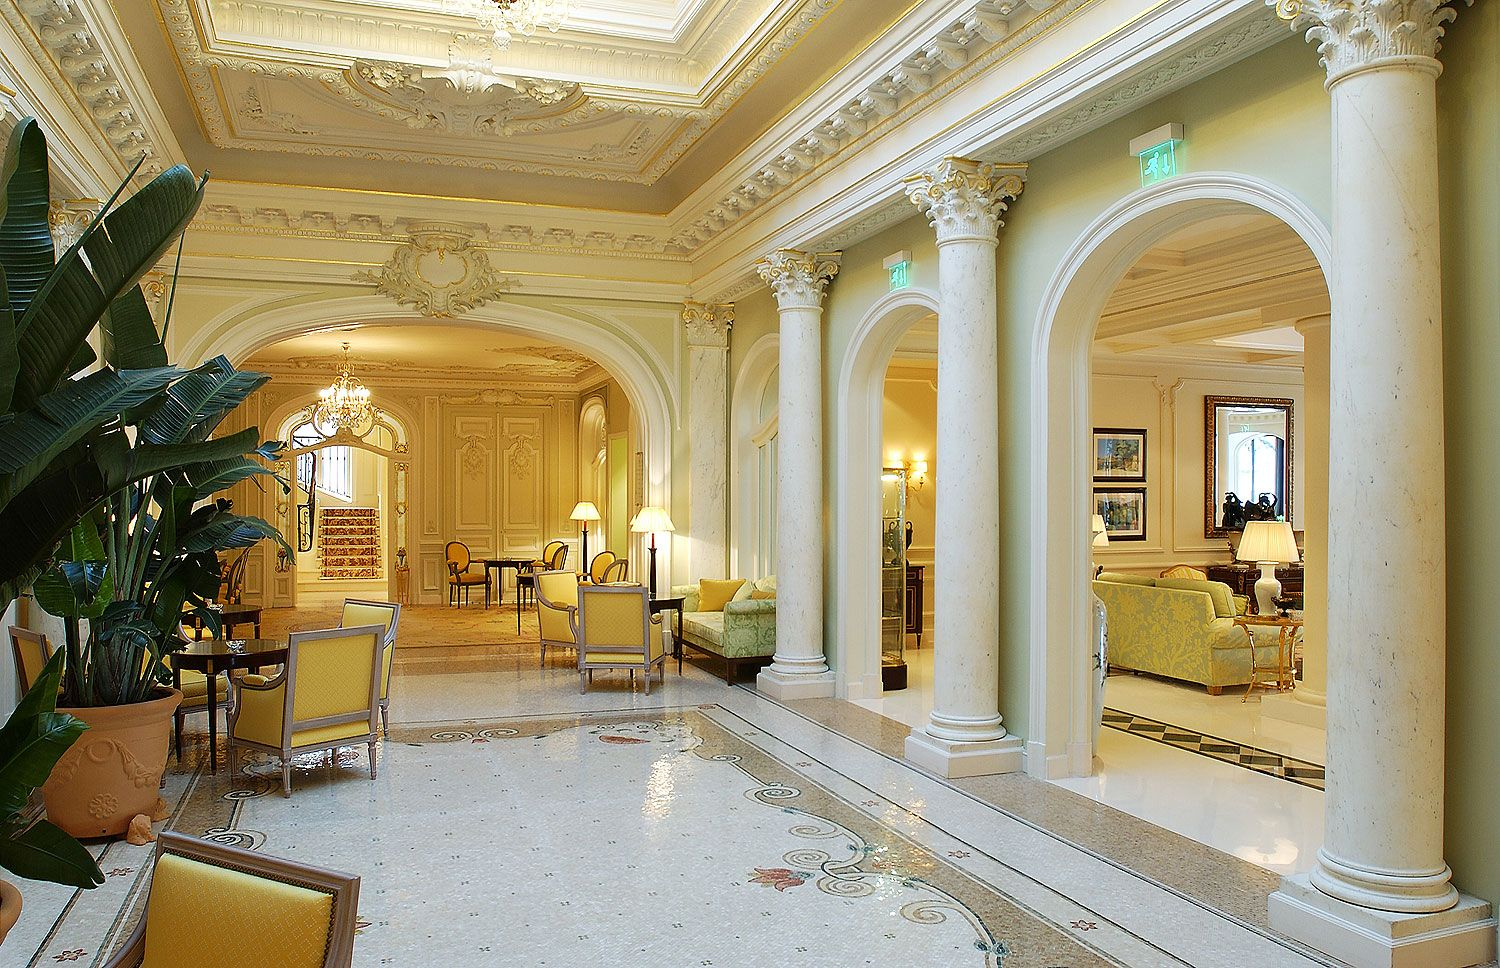 pierre-yves rochon > projects > hotels & spas > hotel hermitage